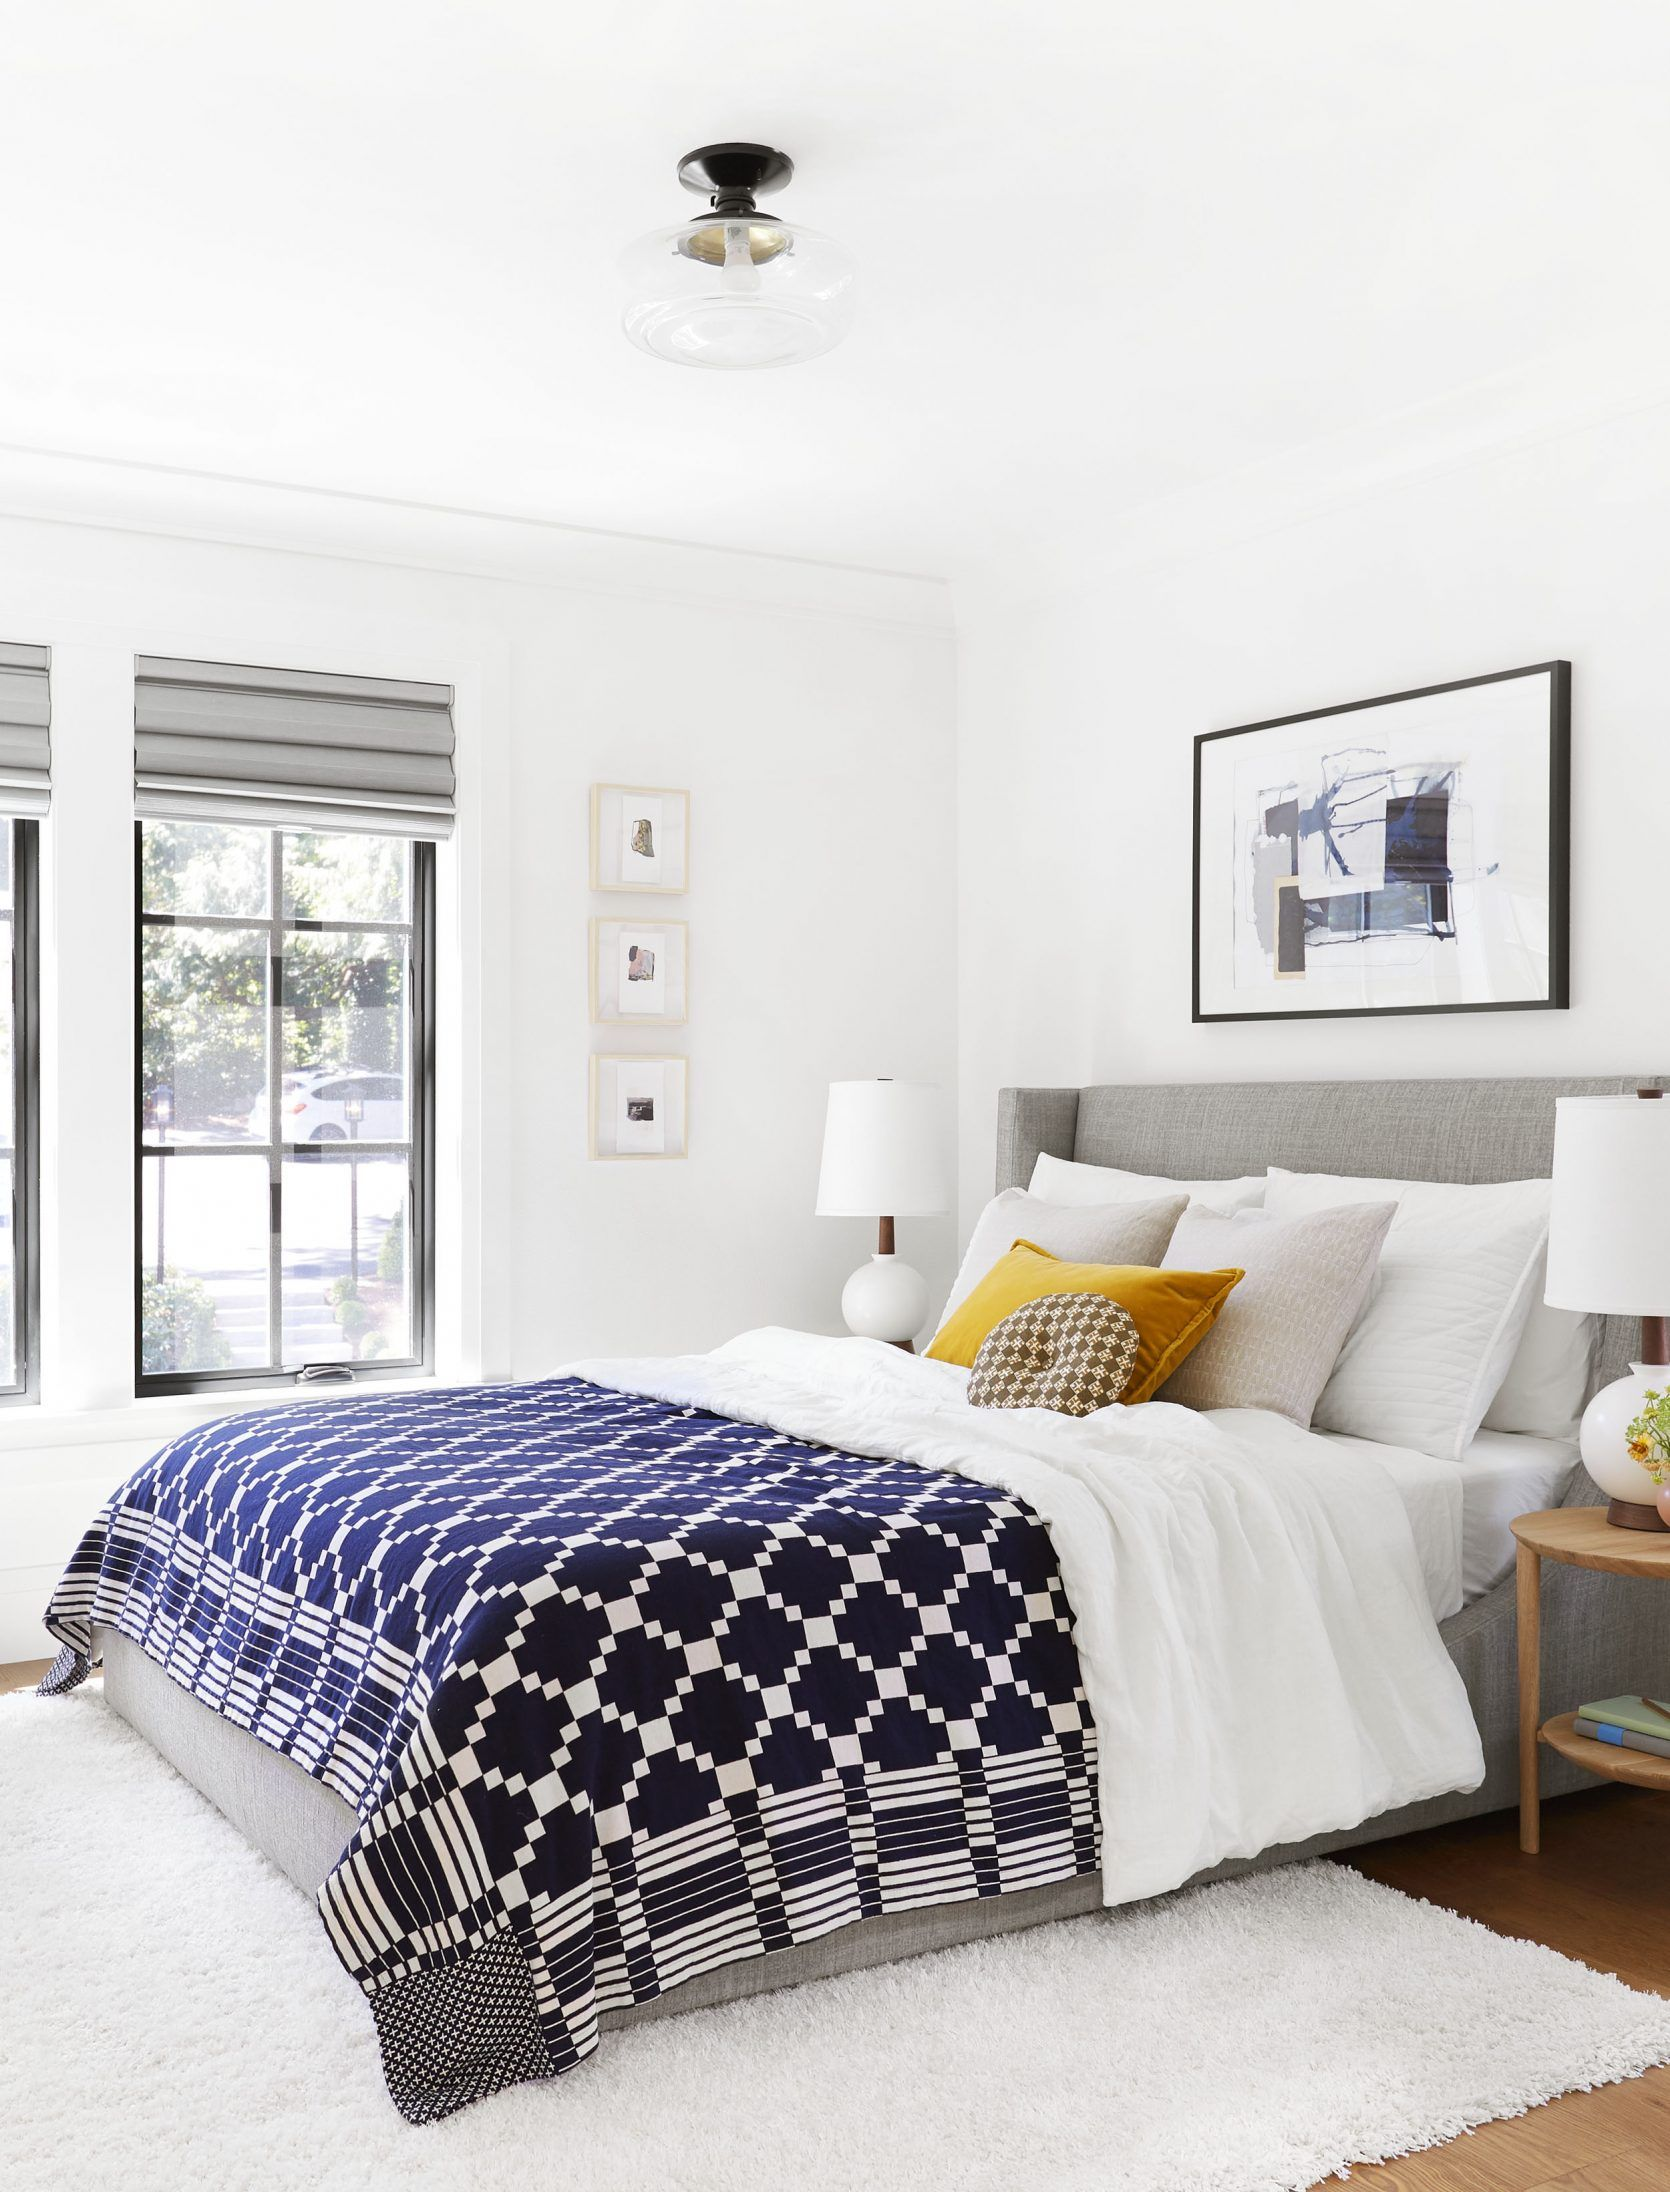 Best 14 Rules To Follow To Design Style The Perfect Bedroom 400 x 300